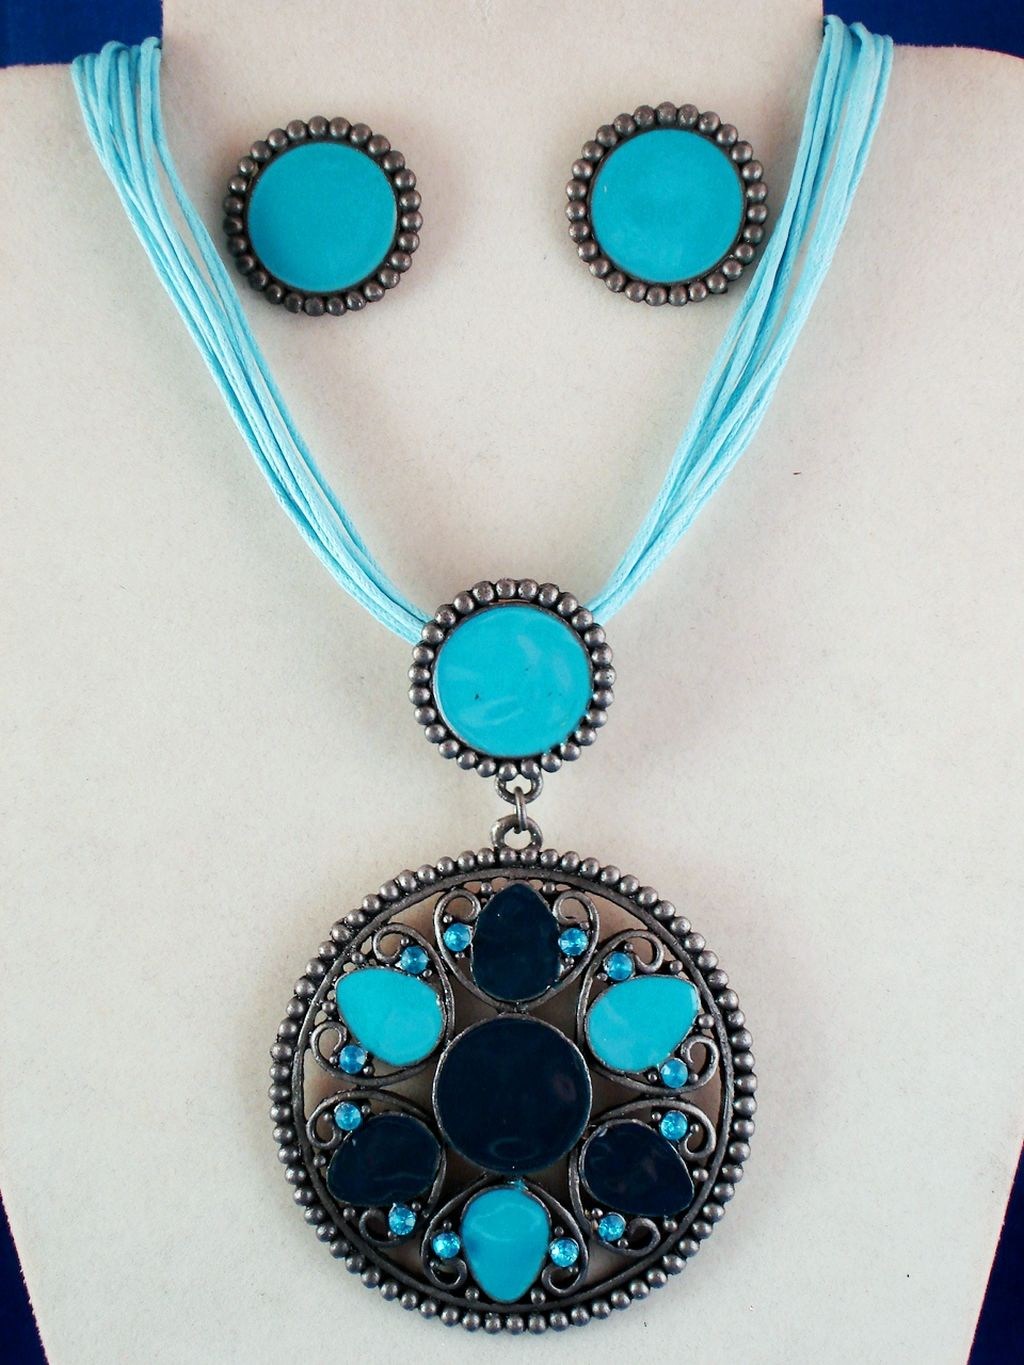 Turquoise Circle Filigree Set of Pendant Necklace & Earrings, Flower w/ Crystals, Classic Style, Cotton Cord, European Fashion Jewelry